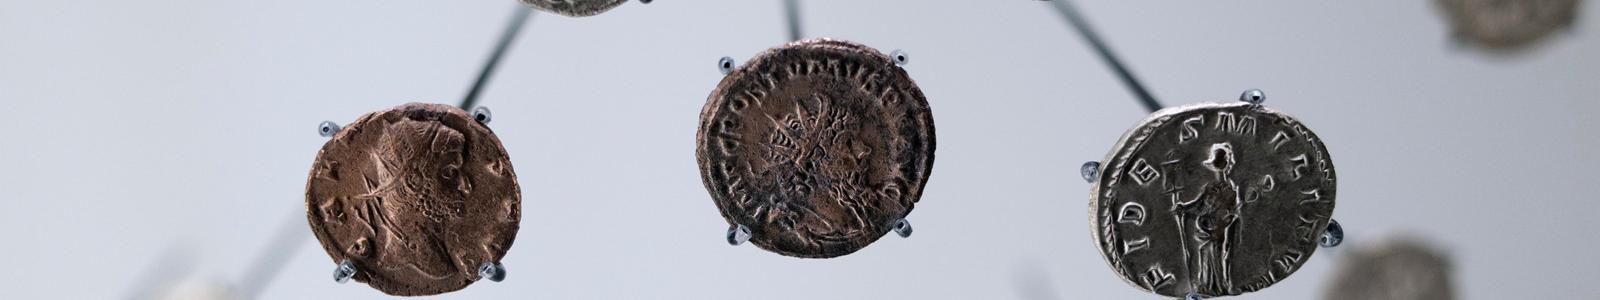 Coin, English, silver, issued by William I, moneyer, Leofwold, at Winchester, Hampshire, 1066 to 1087.